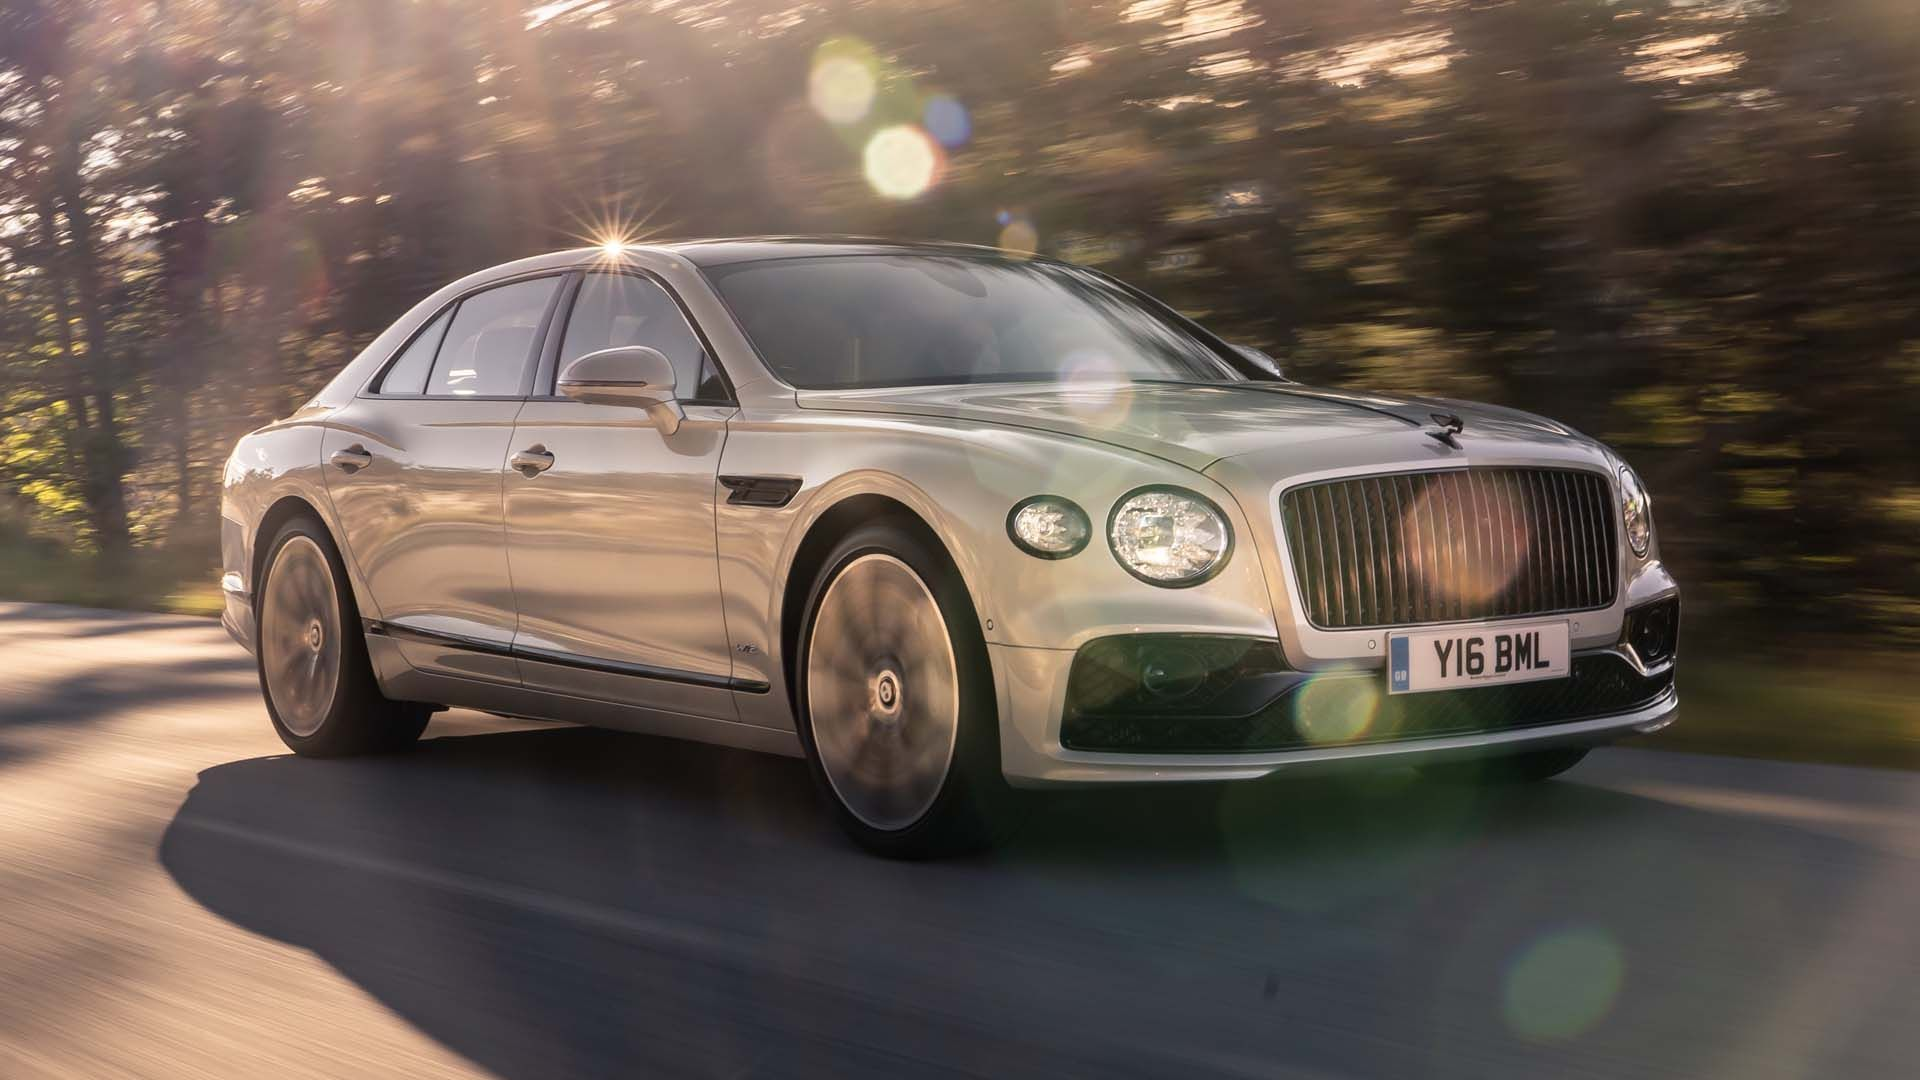 Bentley Flying Spur W12 image